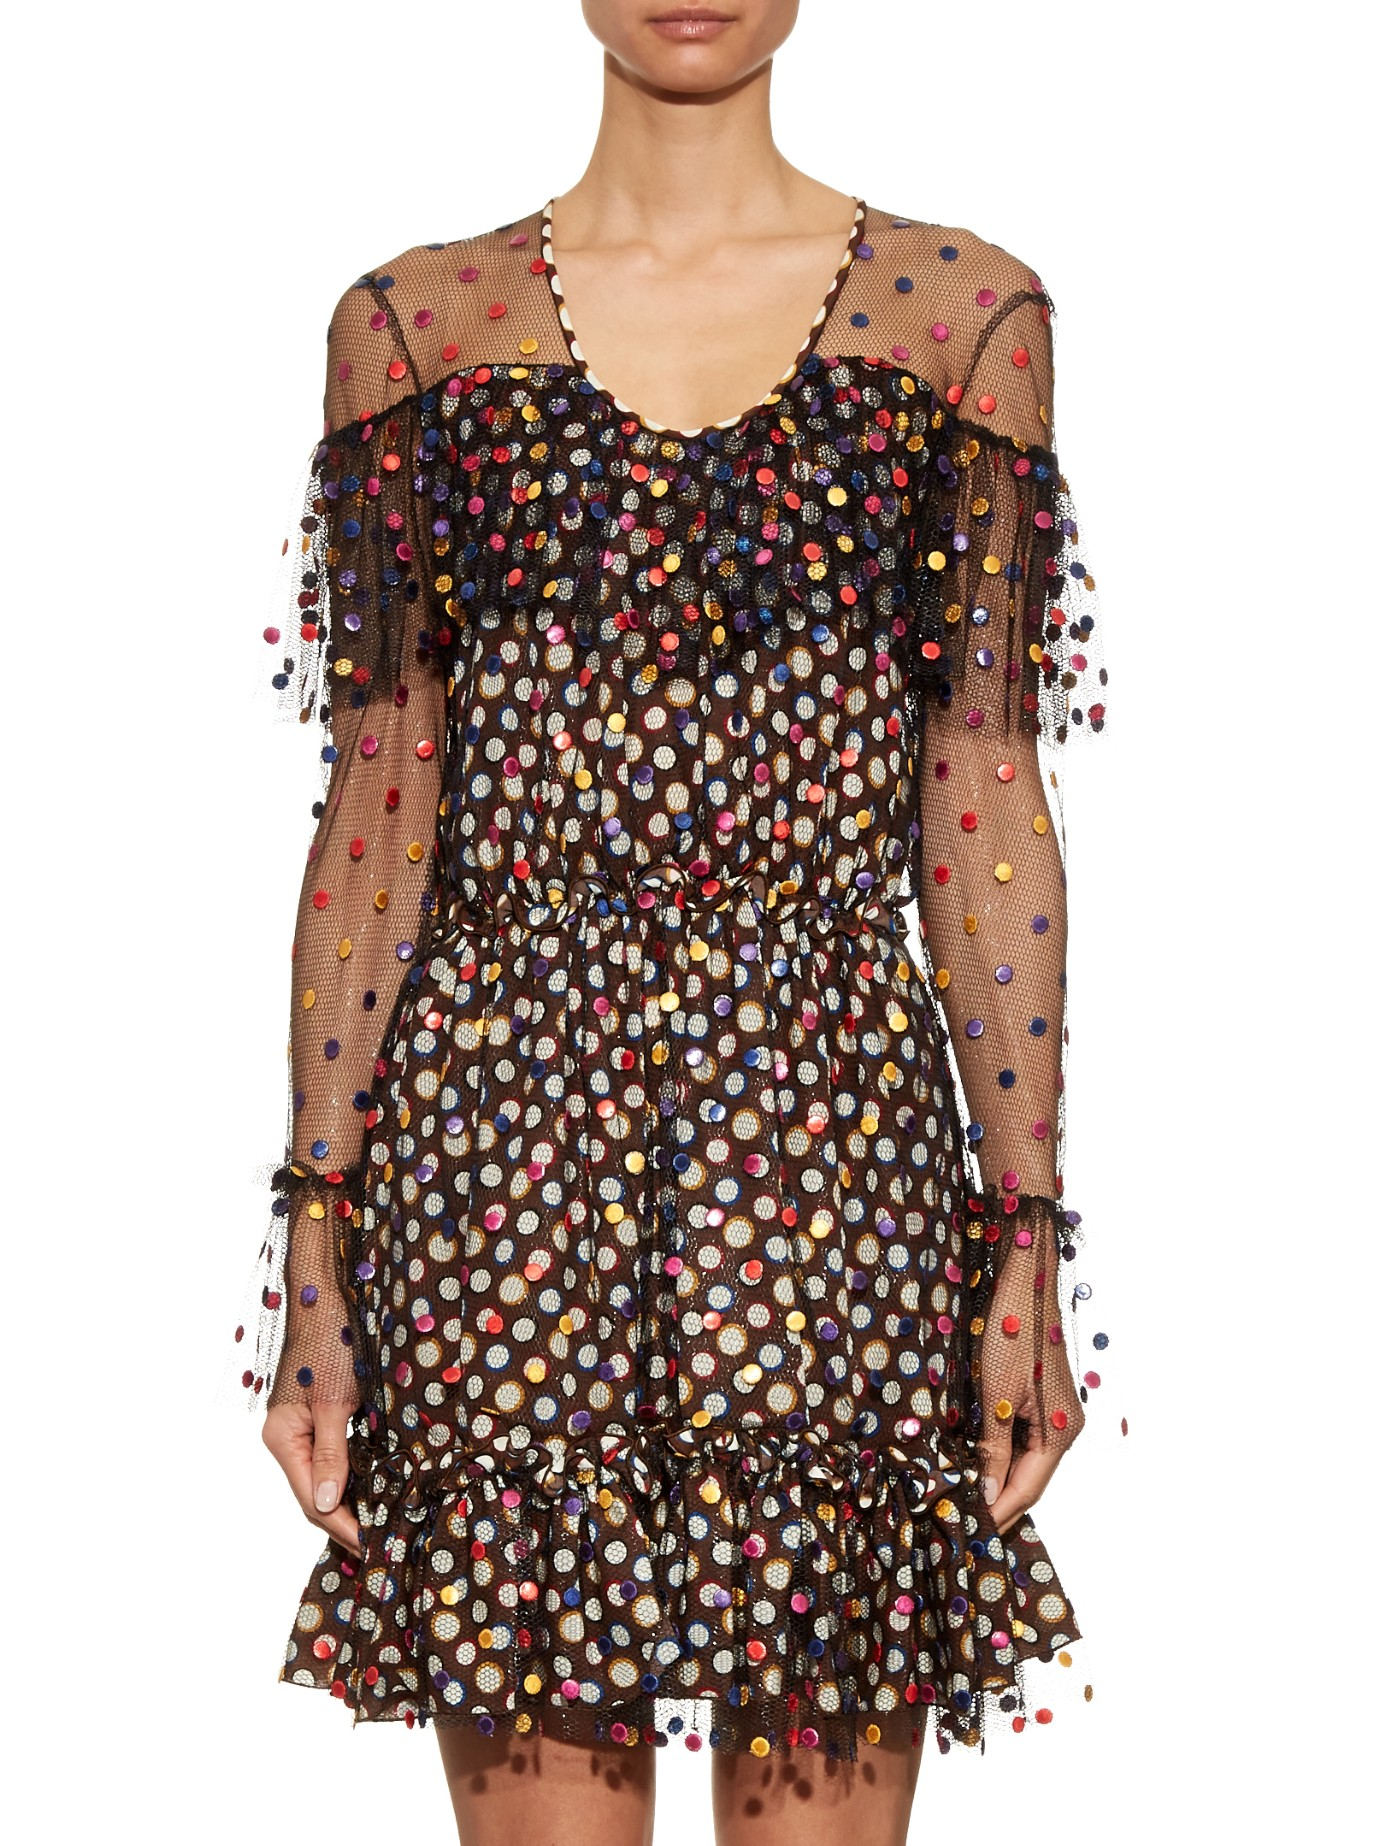 Marco de vincenzo polka dot embroidered tulle dress in